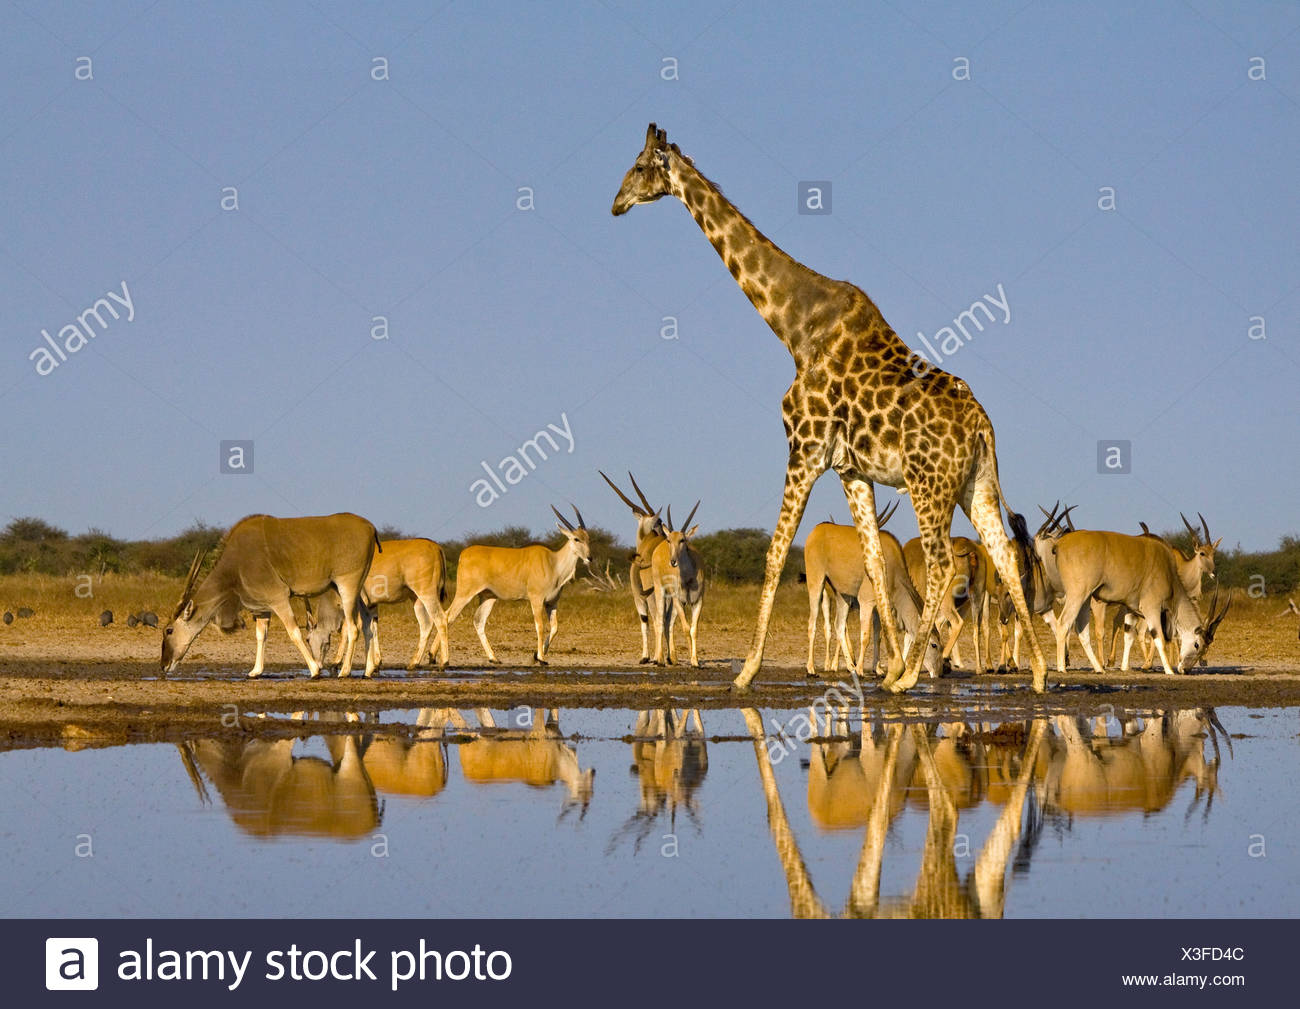 La girafe et l'éland au waterhole, Etosha National Park, Namibie. Photo Stock